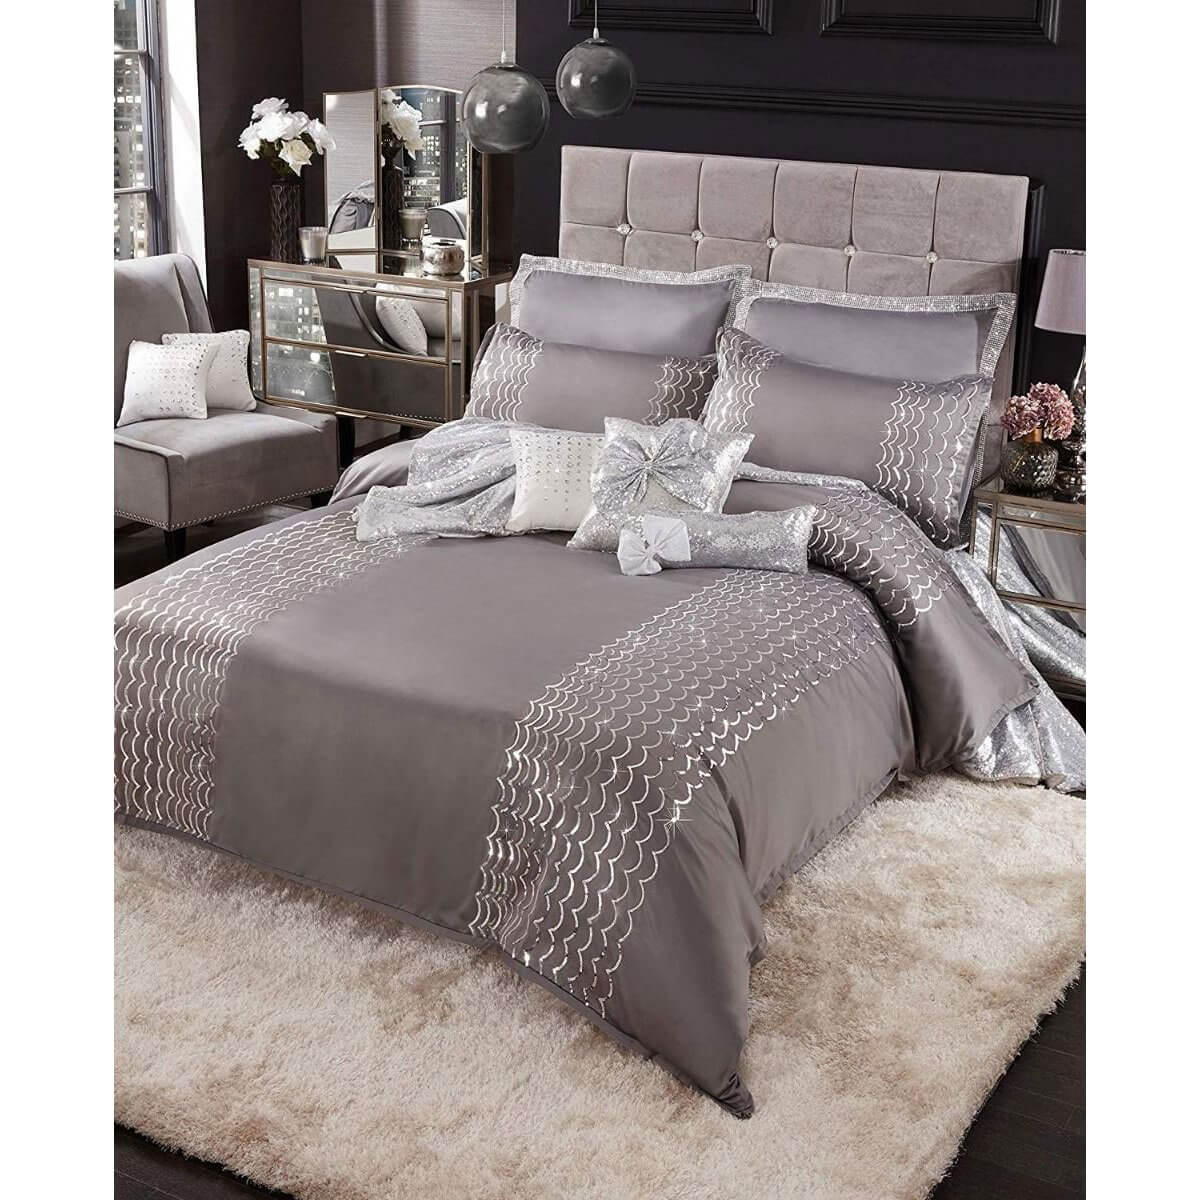 Caprice Bryony Bedding - Reversible Duvet Cover and Pillowcase Set